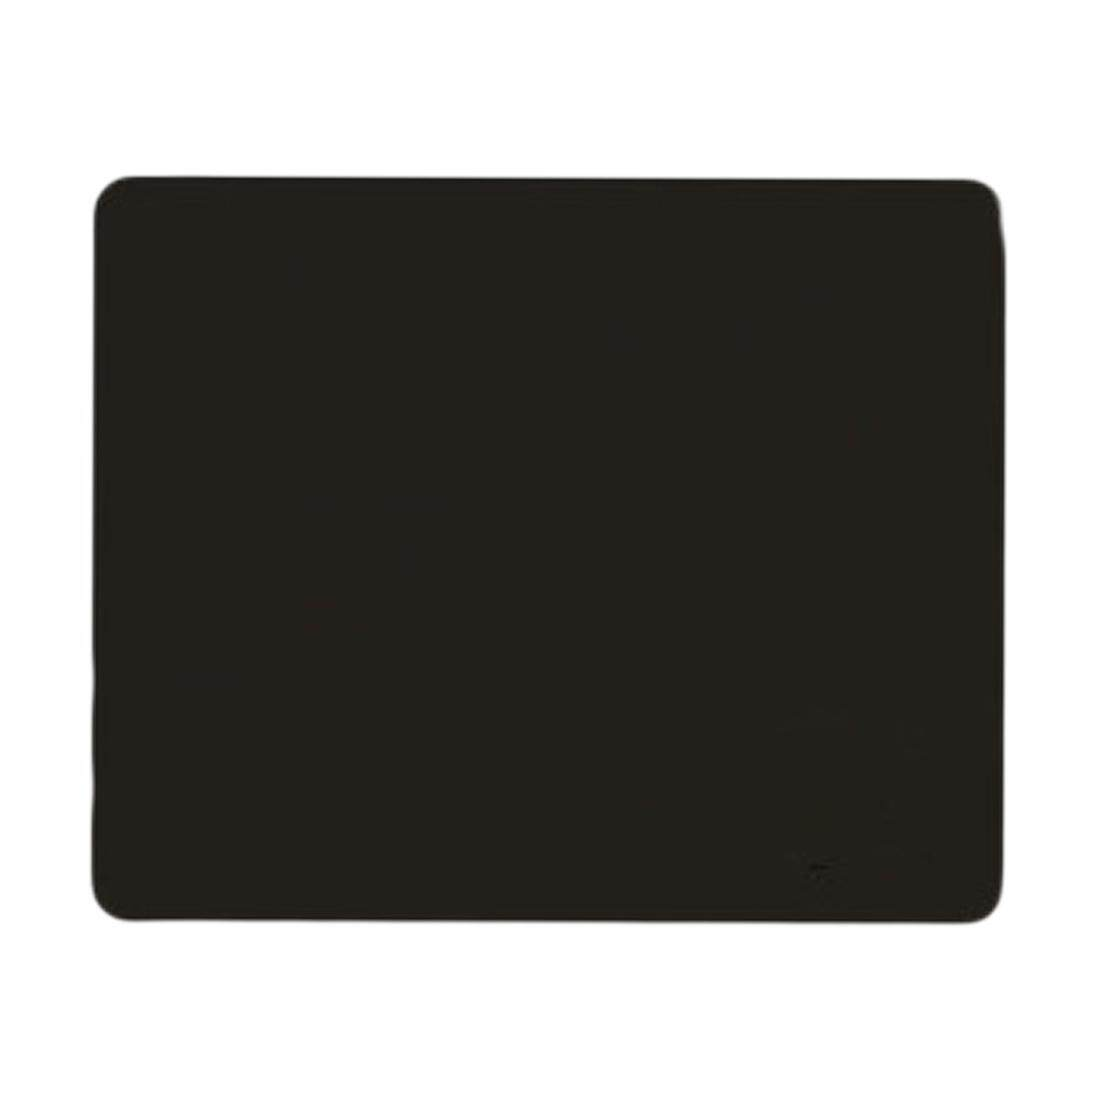 Black Slim Square Mat Mousepad For PC Optical Laser Mouse Trackball Mice - intl